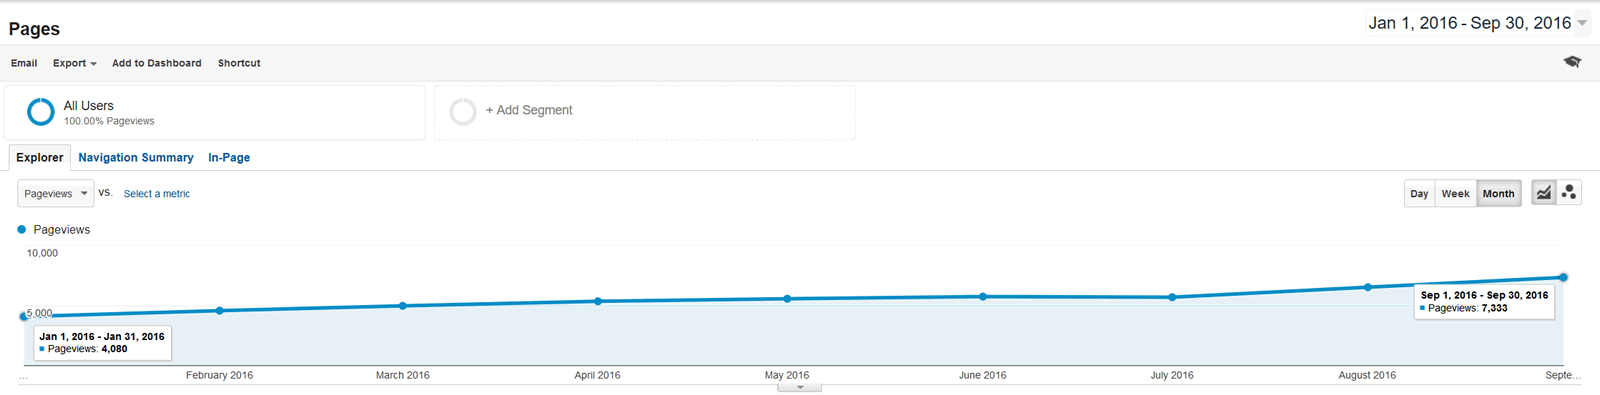 Google Analytics - Pages - Pageviews - 2016-01-01 through 2016-09-30